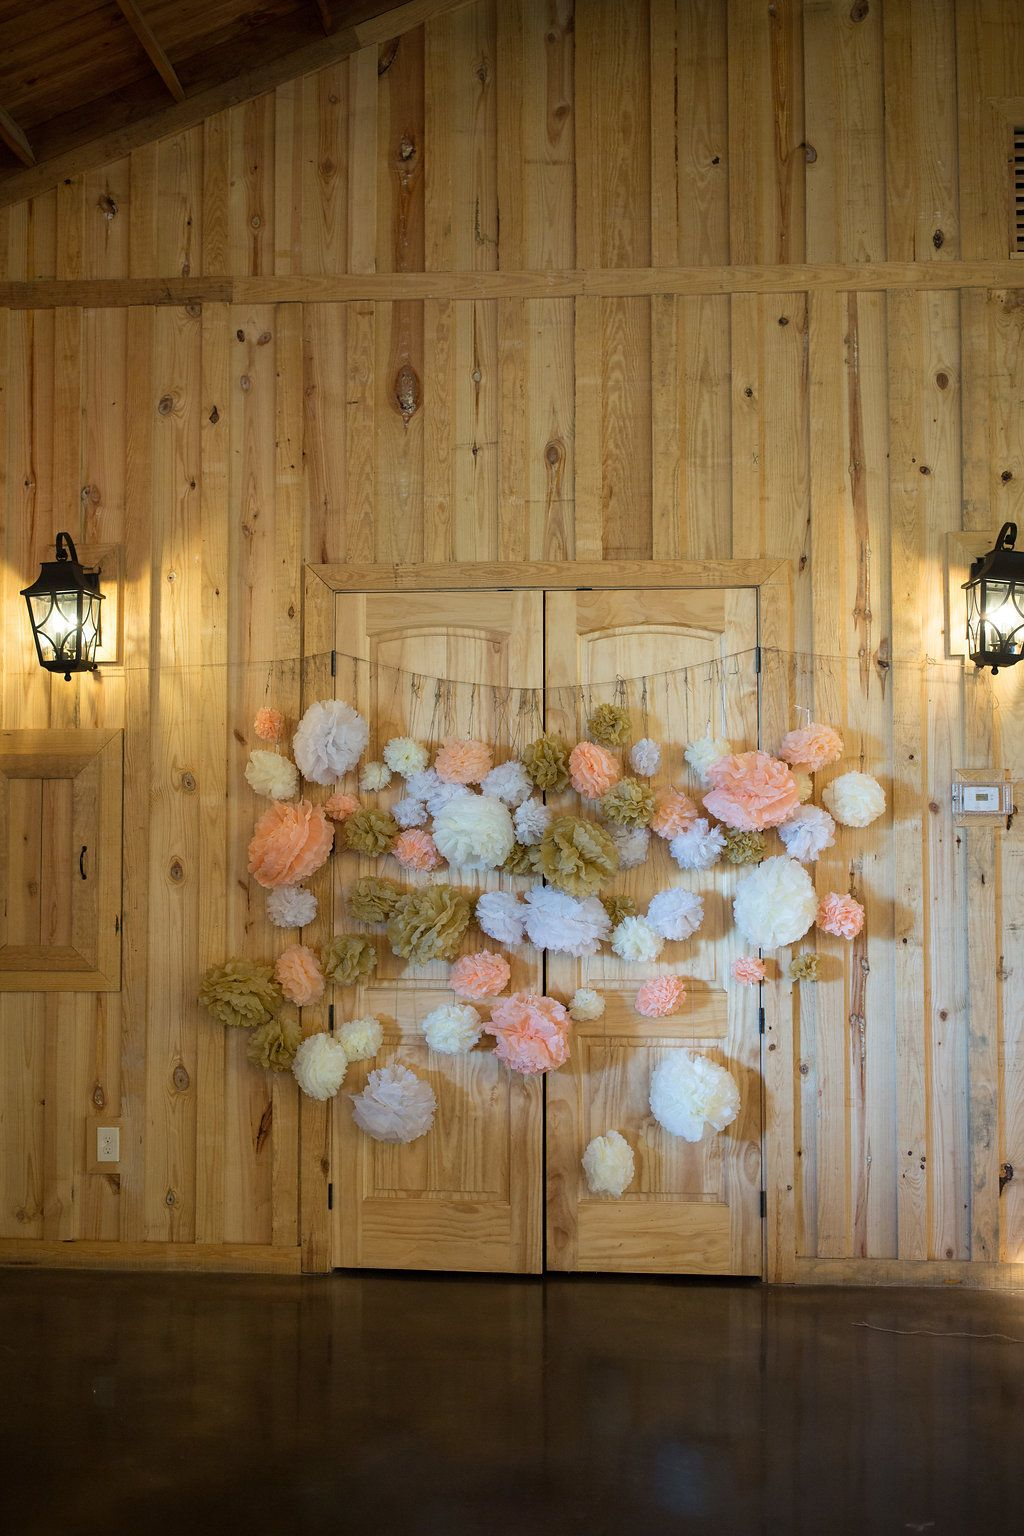 Wedding room decoration ideas 2018  DIY photo booth backdrop  peach  gold wedding ideas  DIY wedding